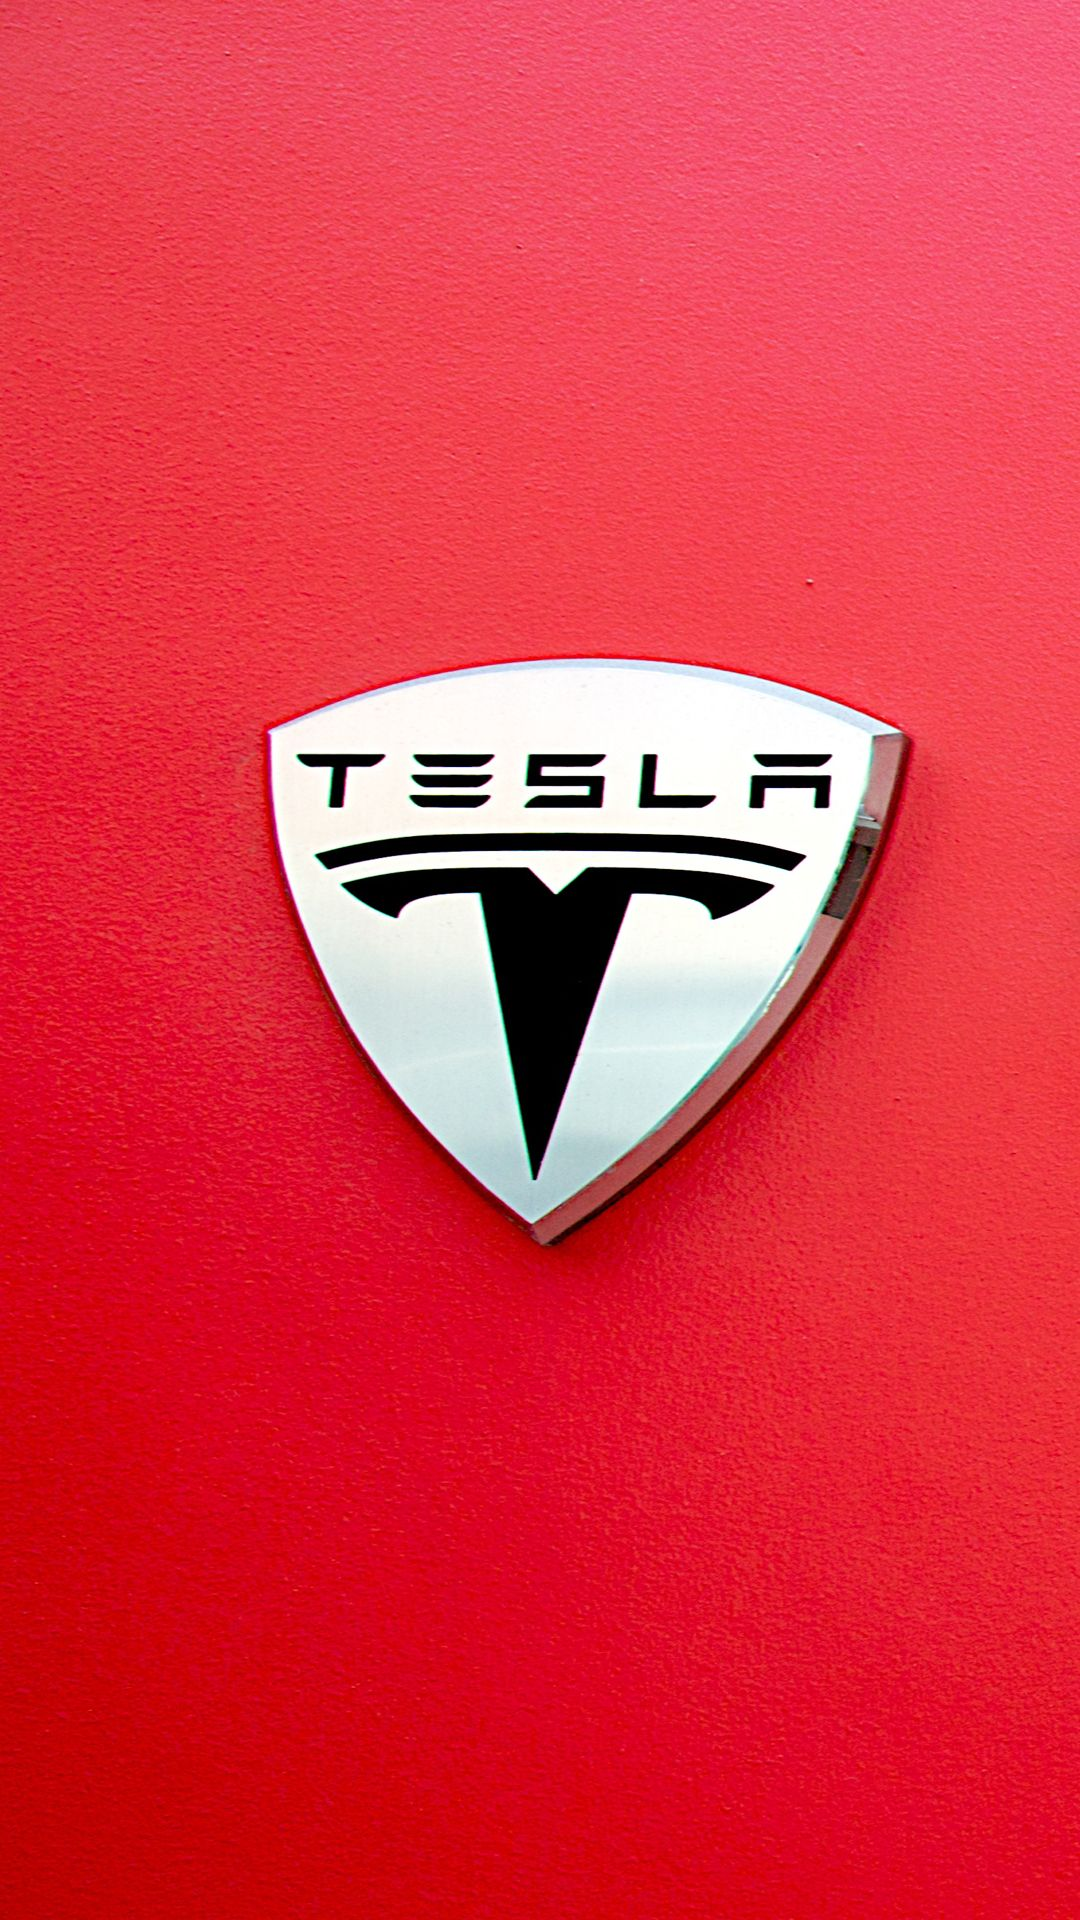 1080x1920 Tesla Logo iPhone Wallpaper HD